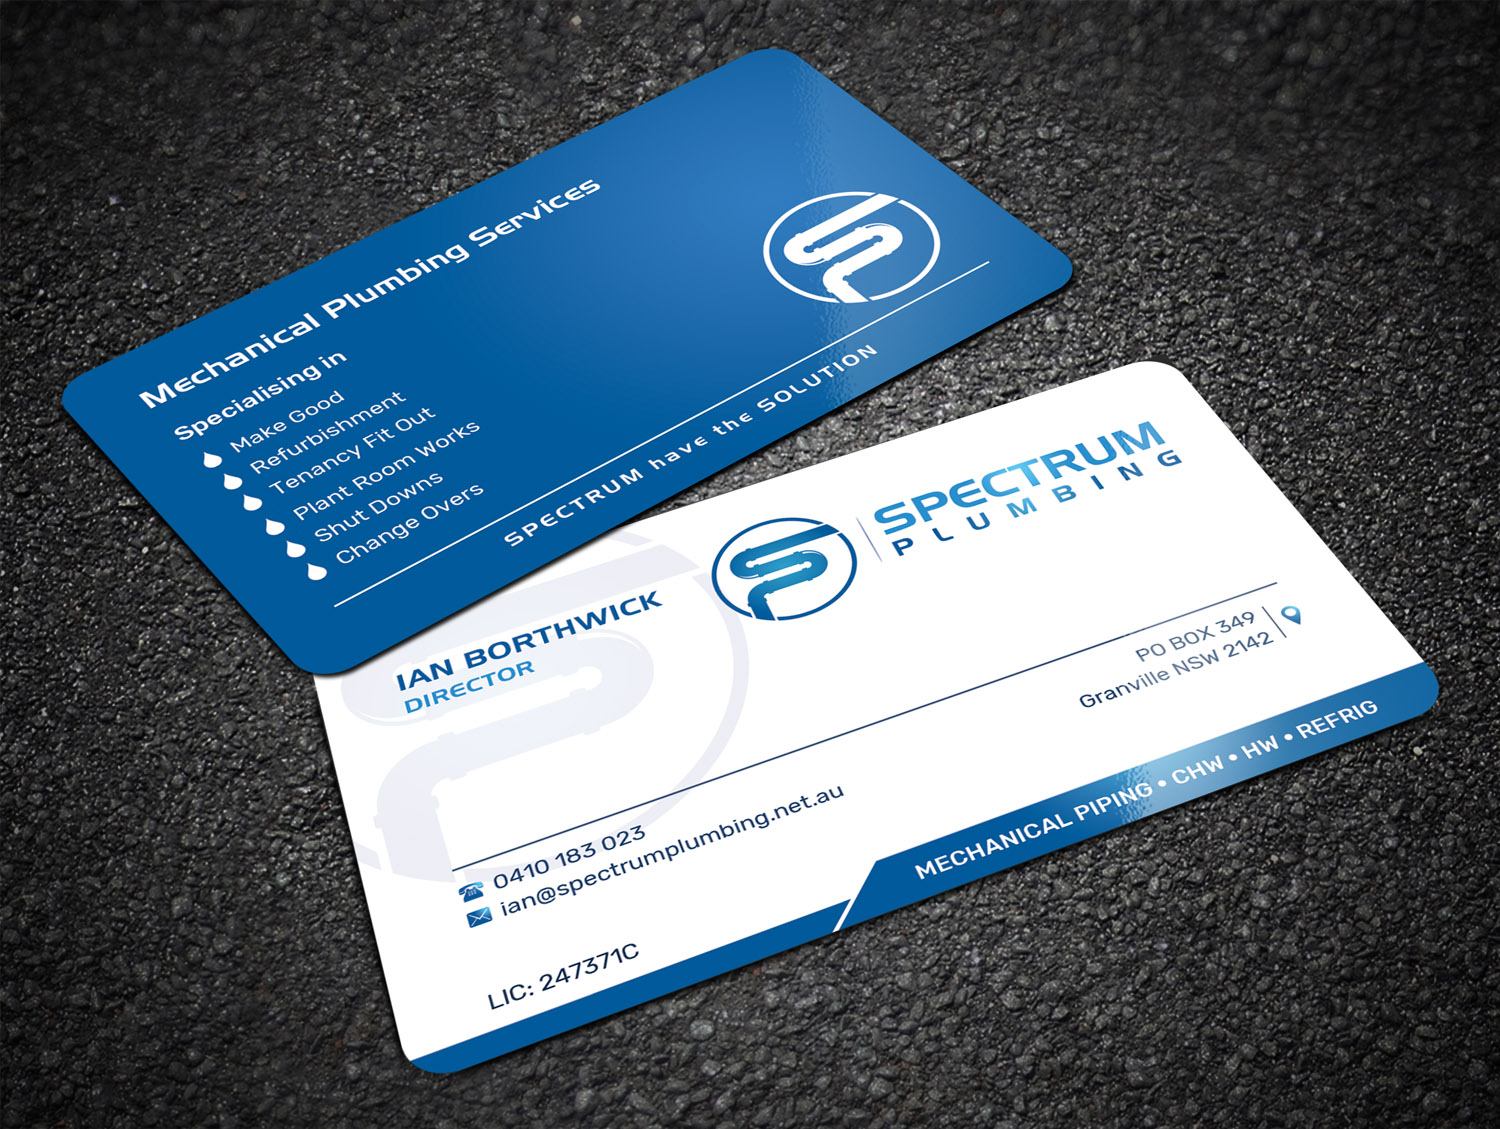 Professional serious plumbing business card design for spectrum business card design by sandaruwan for spectrum plumbing design 17960664 colourmoves